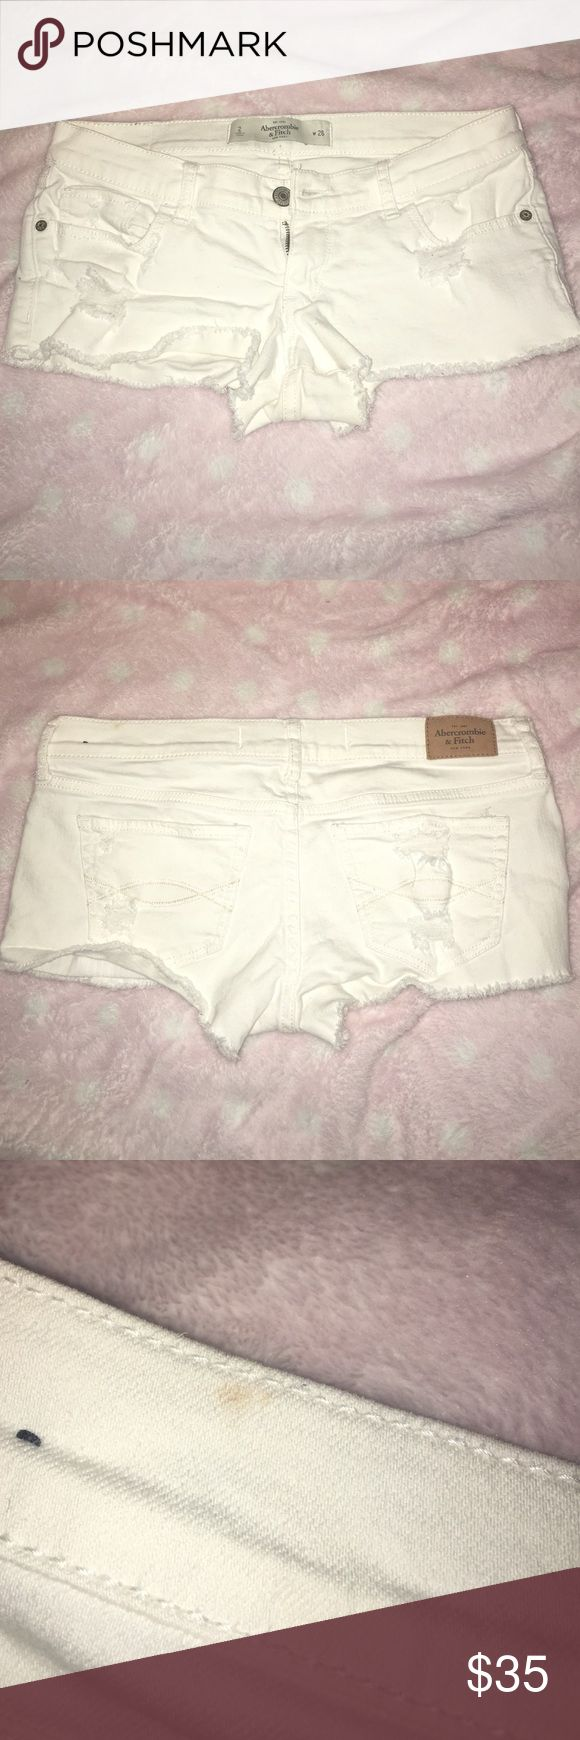 Abercrombie and fitch shorts bought these white denim shorts a while back and just haven't worn them, and they're far too short for me now! only worn two or three times, and in overall perfect condition aside from the very small brown stain on the top (pictured). make offers :) I do try ons, just ask !!! Abercrombie & Fitch Shorts Jean Shorts